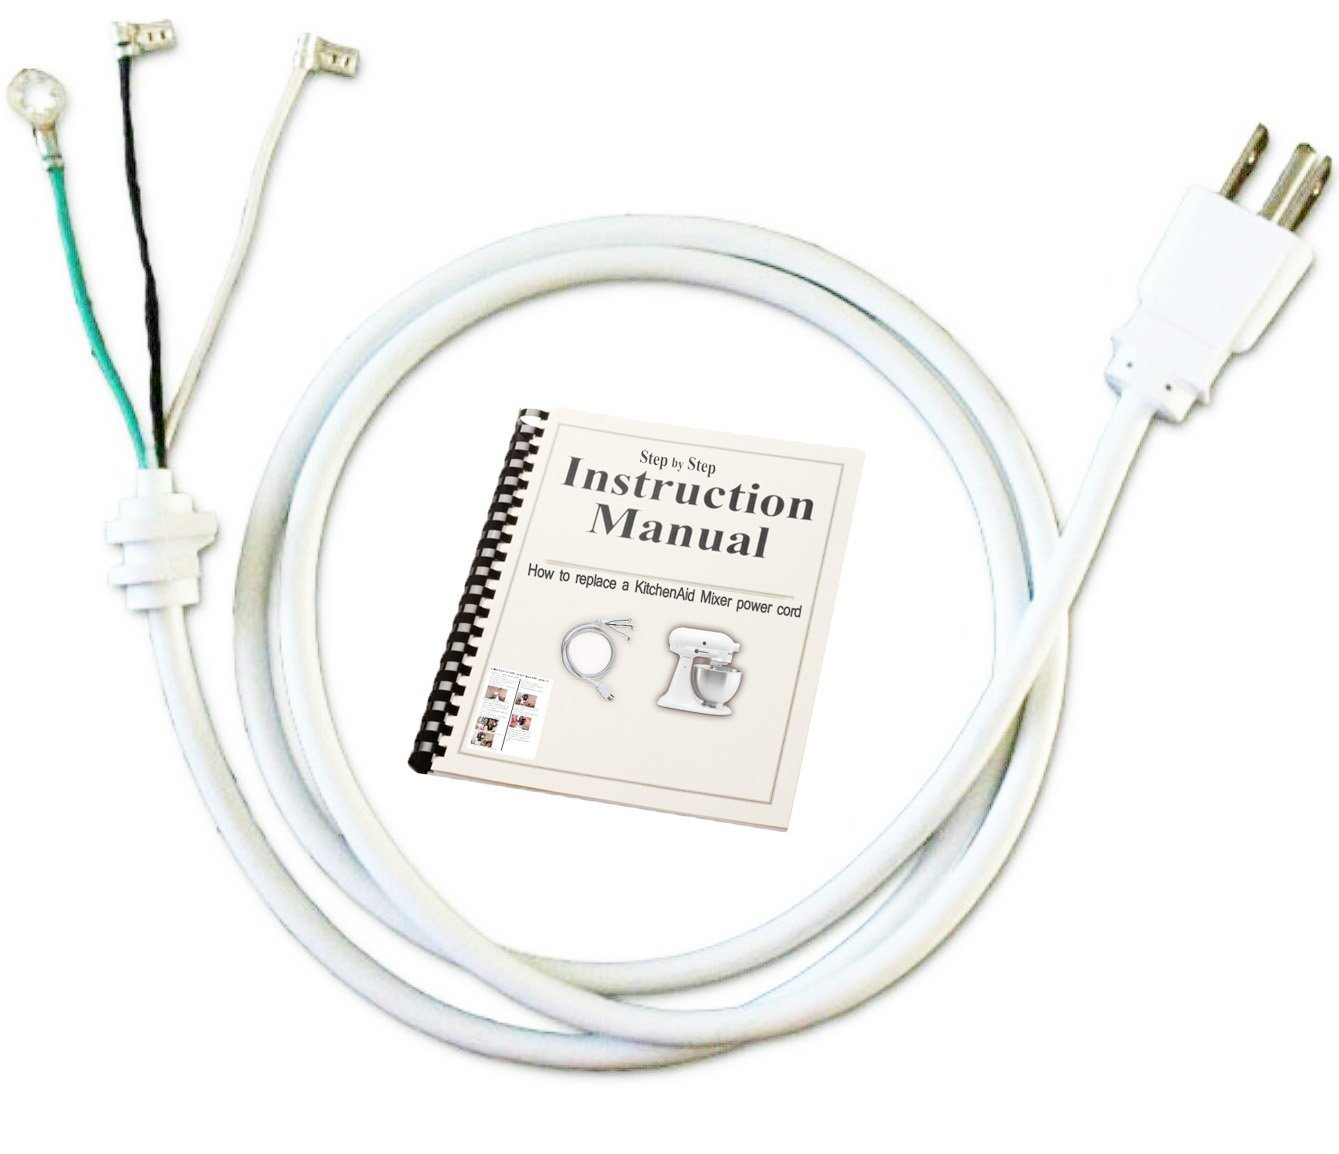 KitchenAid Stand Mixer Replacement White Cord for Model Number AP4926890 PS3489603 9701025 W10325327 W10164882